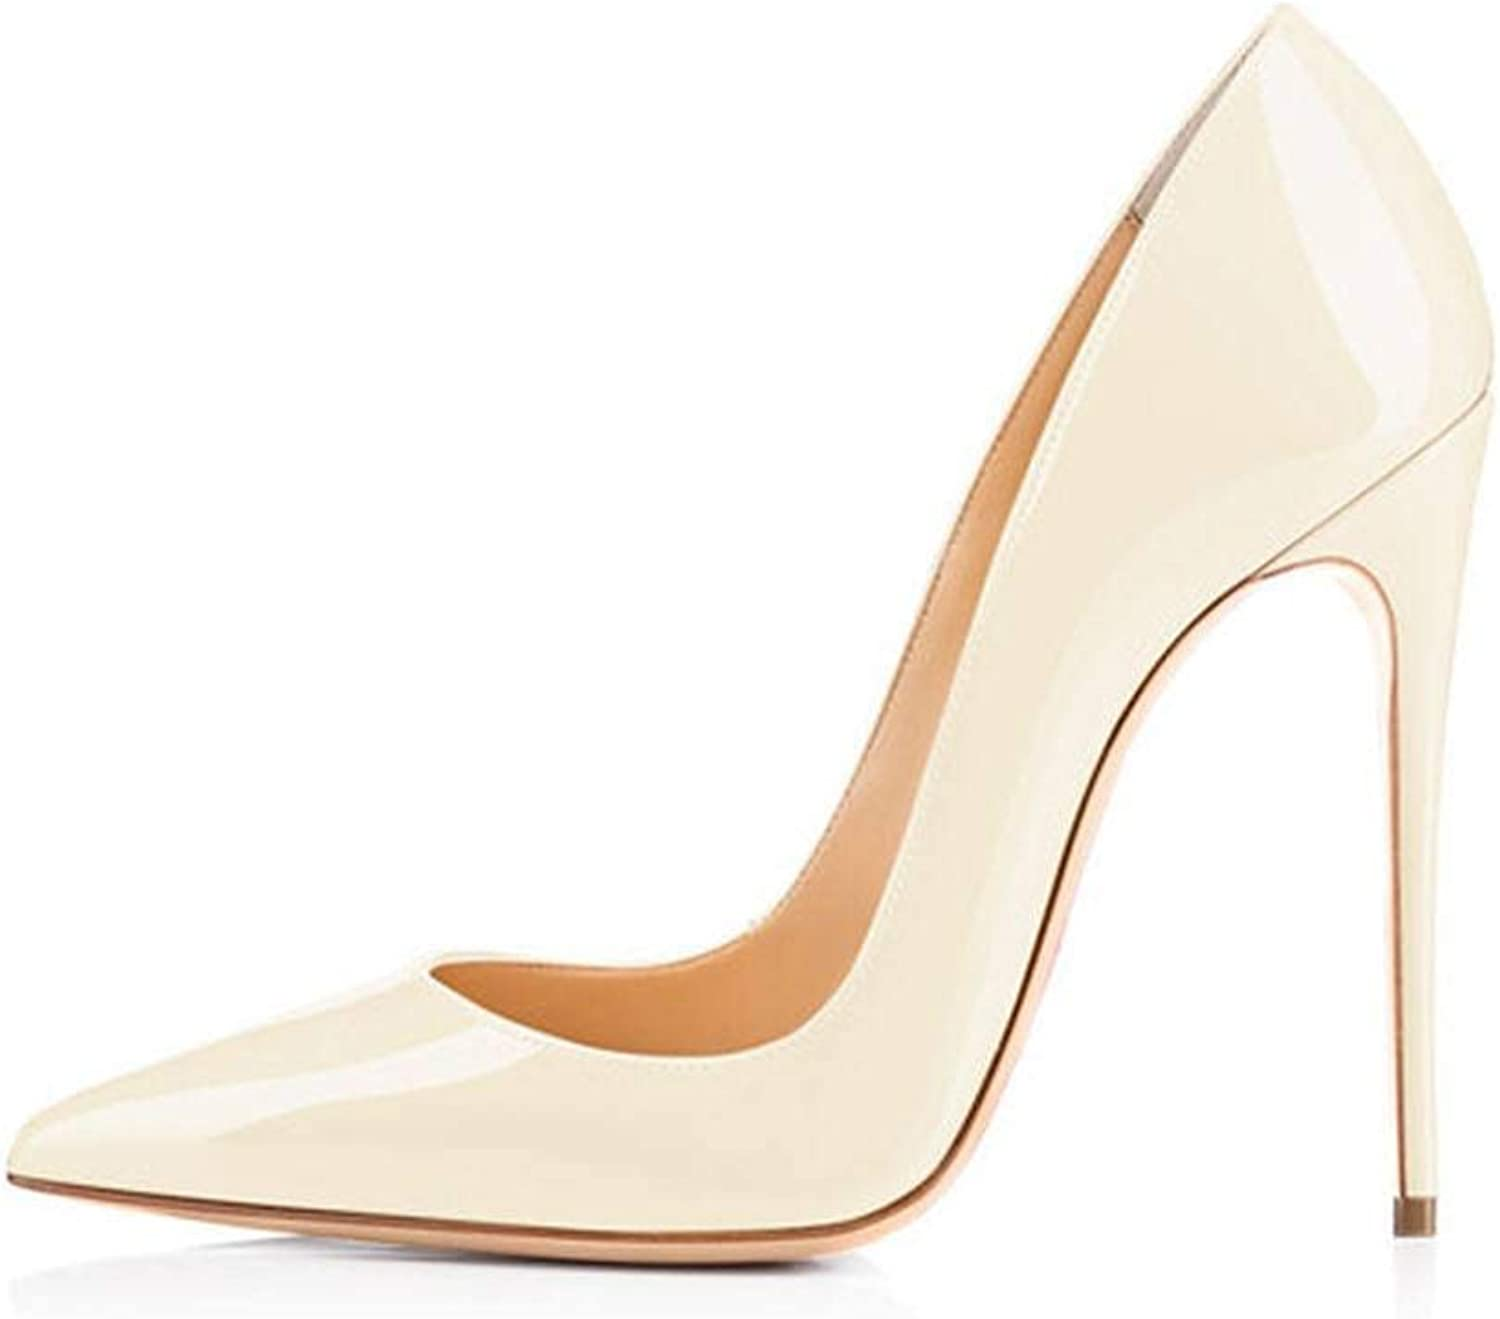 Lin-House Women shoes Thin High Heel Stilettos Pointed Toe Patent Leather shoes,H161213,11